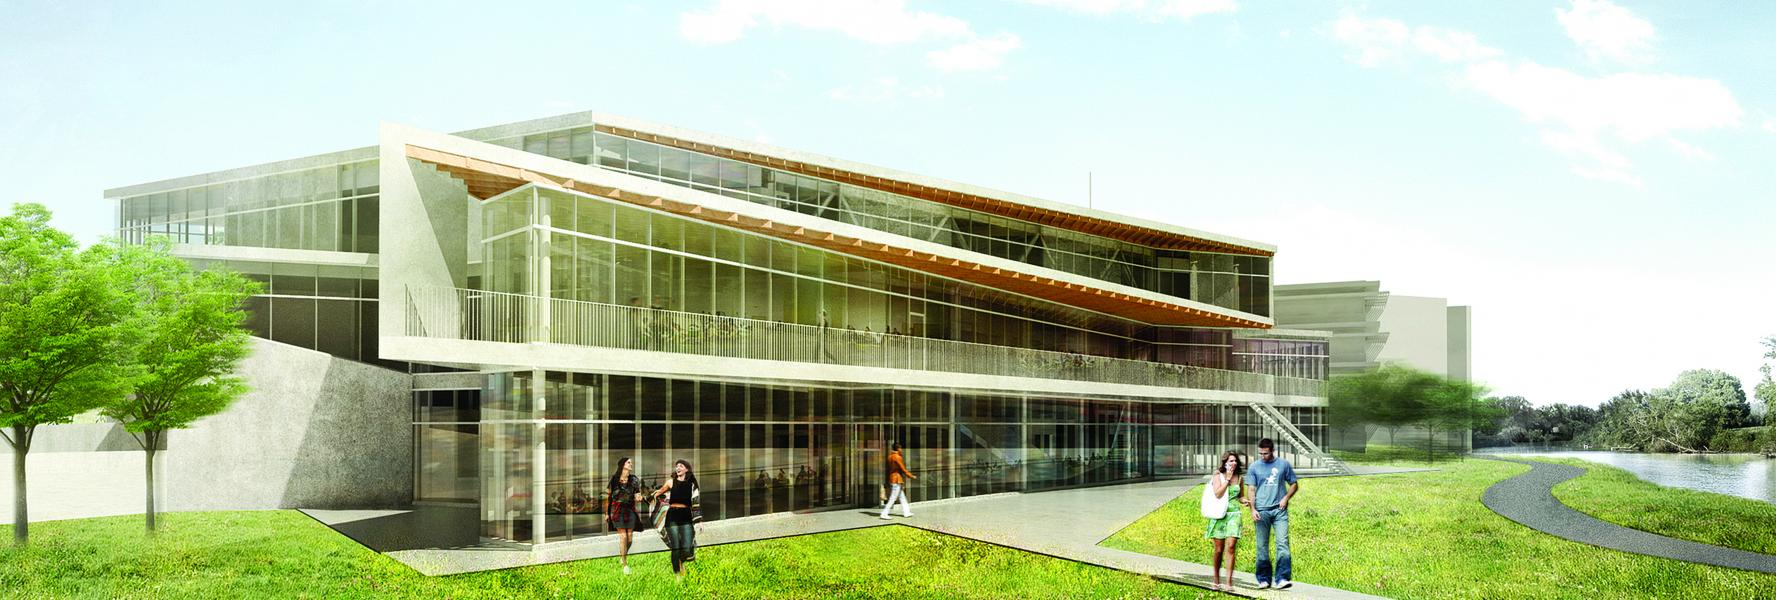 Exterior rendering of the student centre